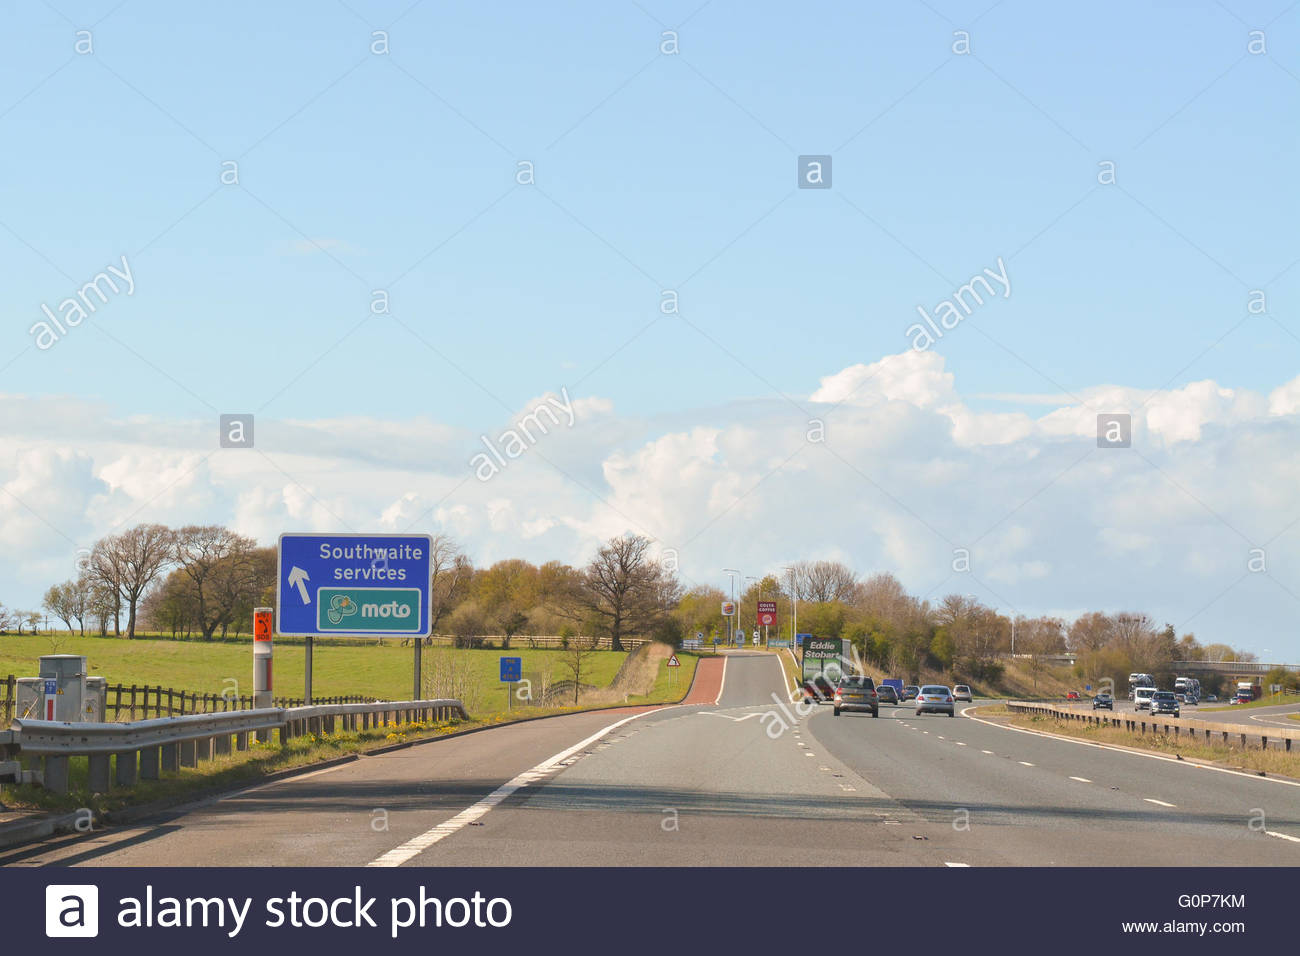 Southwaite moto services between junctions 41 and 42 of the M6 motorway northbound, Southwaite, Cumbria, England - Stock Image